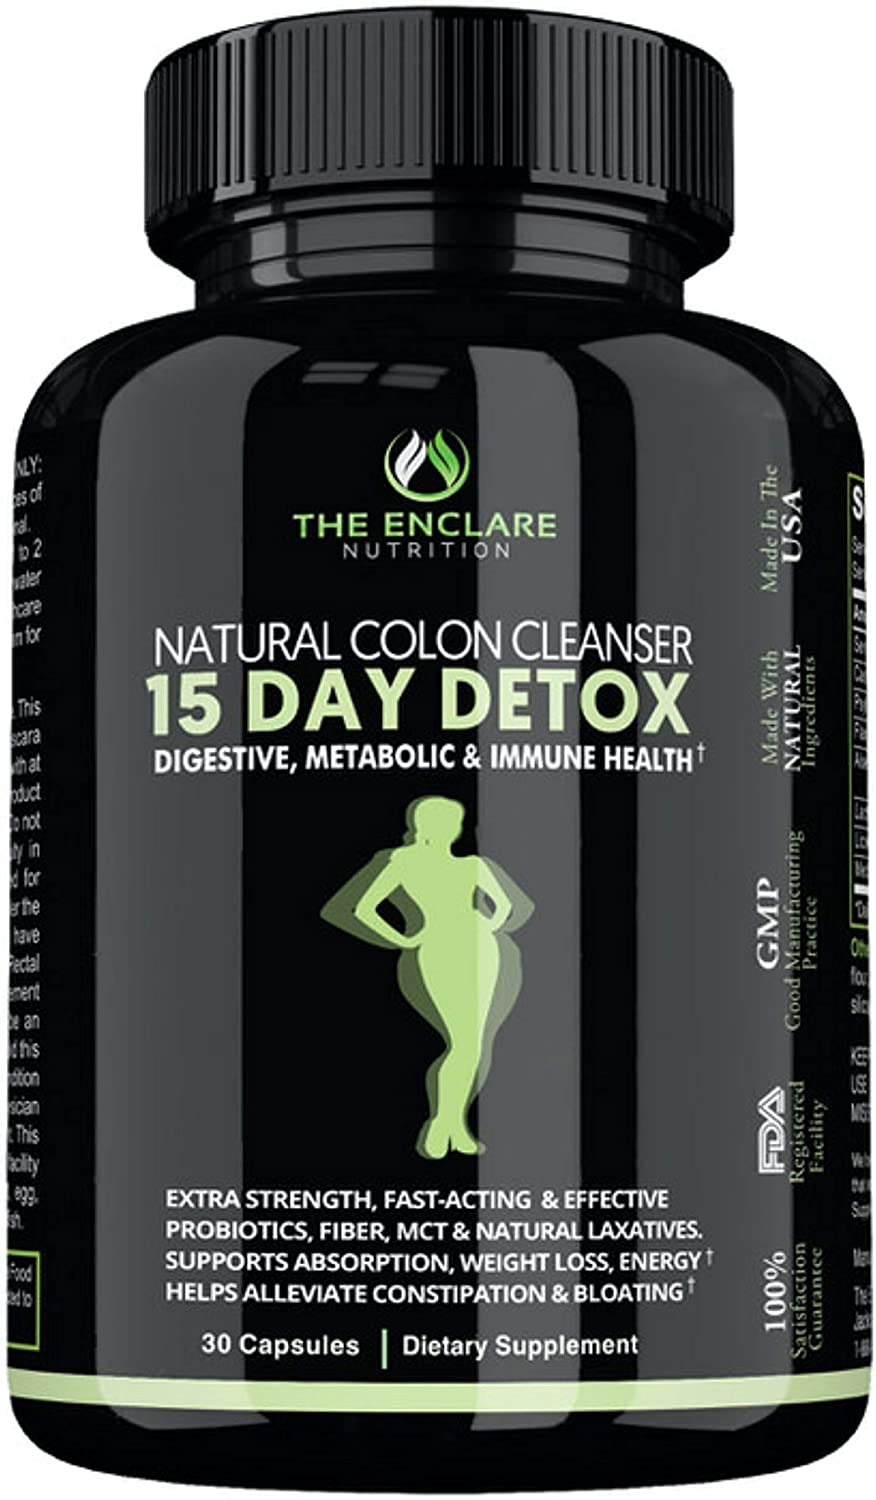 Amazon Com Detox Colon Cleanse For Weight Loss 15 Day Fast Acting Detox Pills Extra Strength With Natural Laxatives Probiotic Fiber Constipation Relief Reduce Bloating Boost Energy Focus Immune Support Health Personal Care